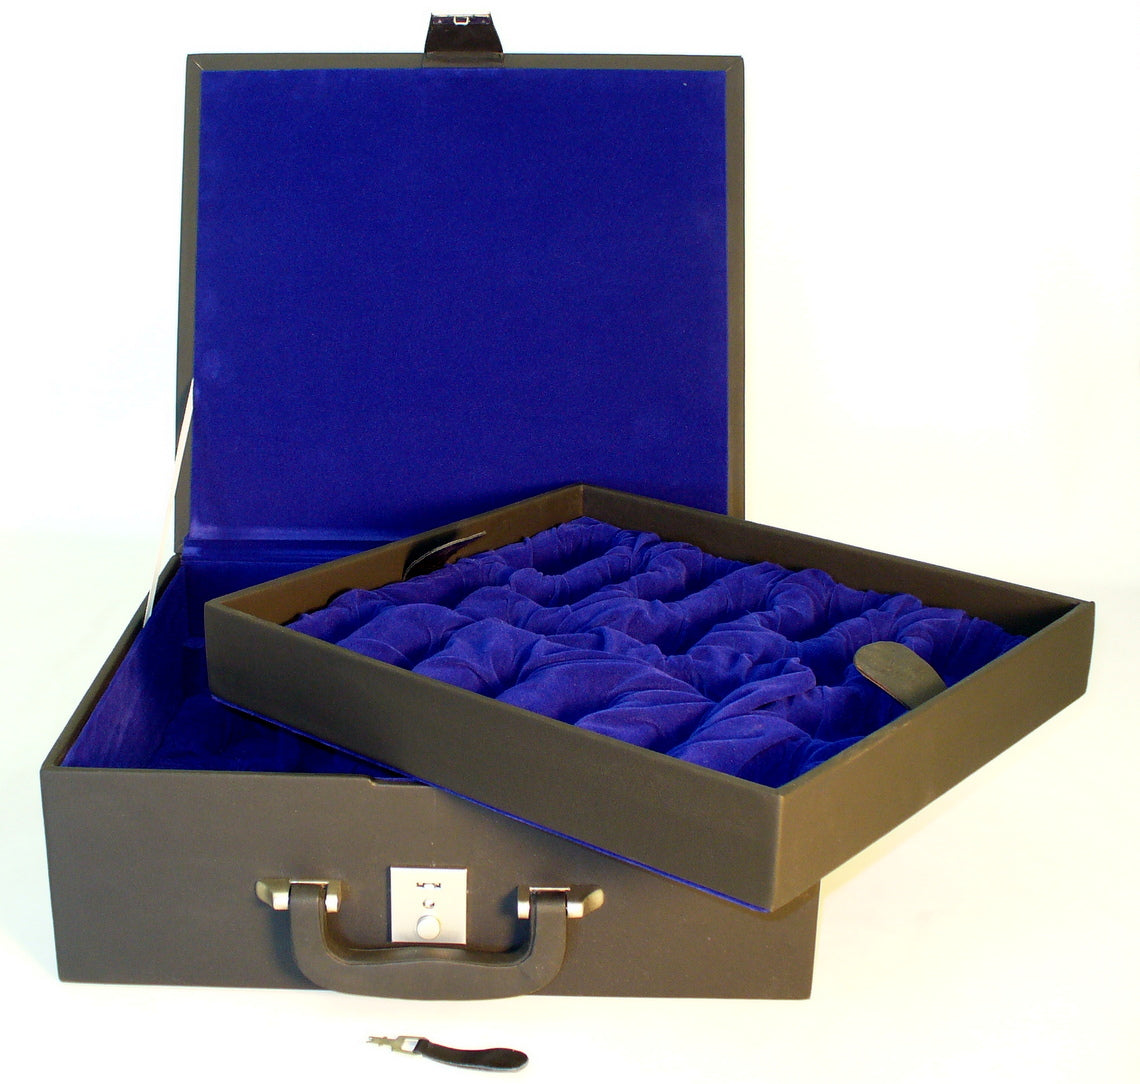 Large Black Vinyl Chess Pieces Storage Box with Slots and Blue Felt Lined Interior